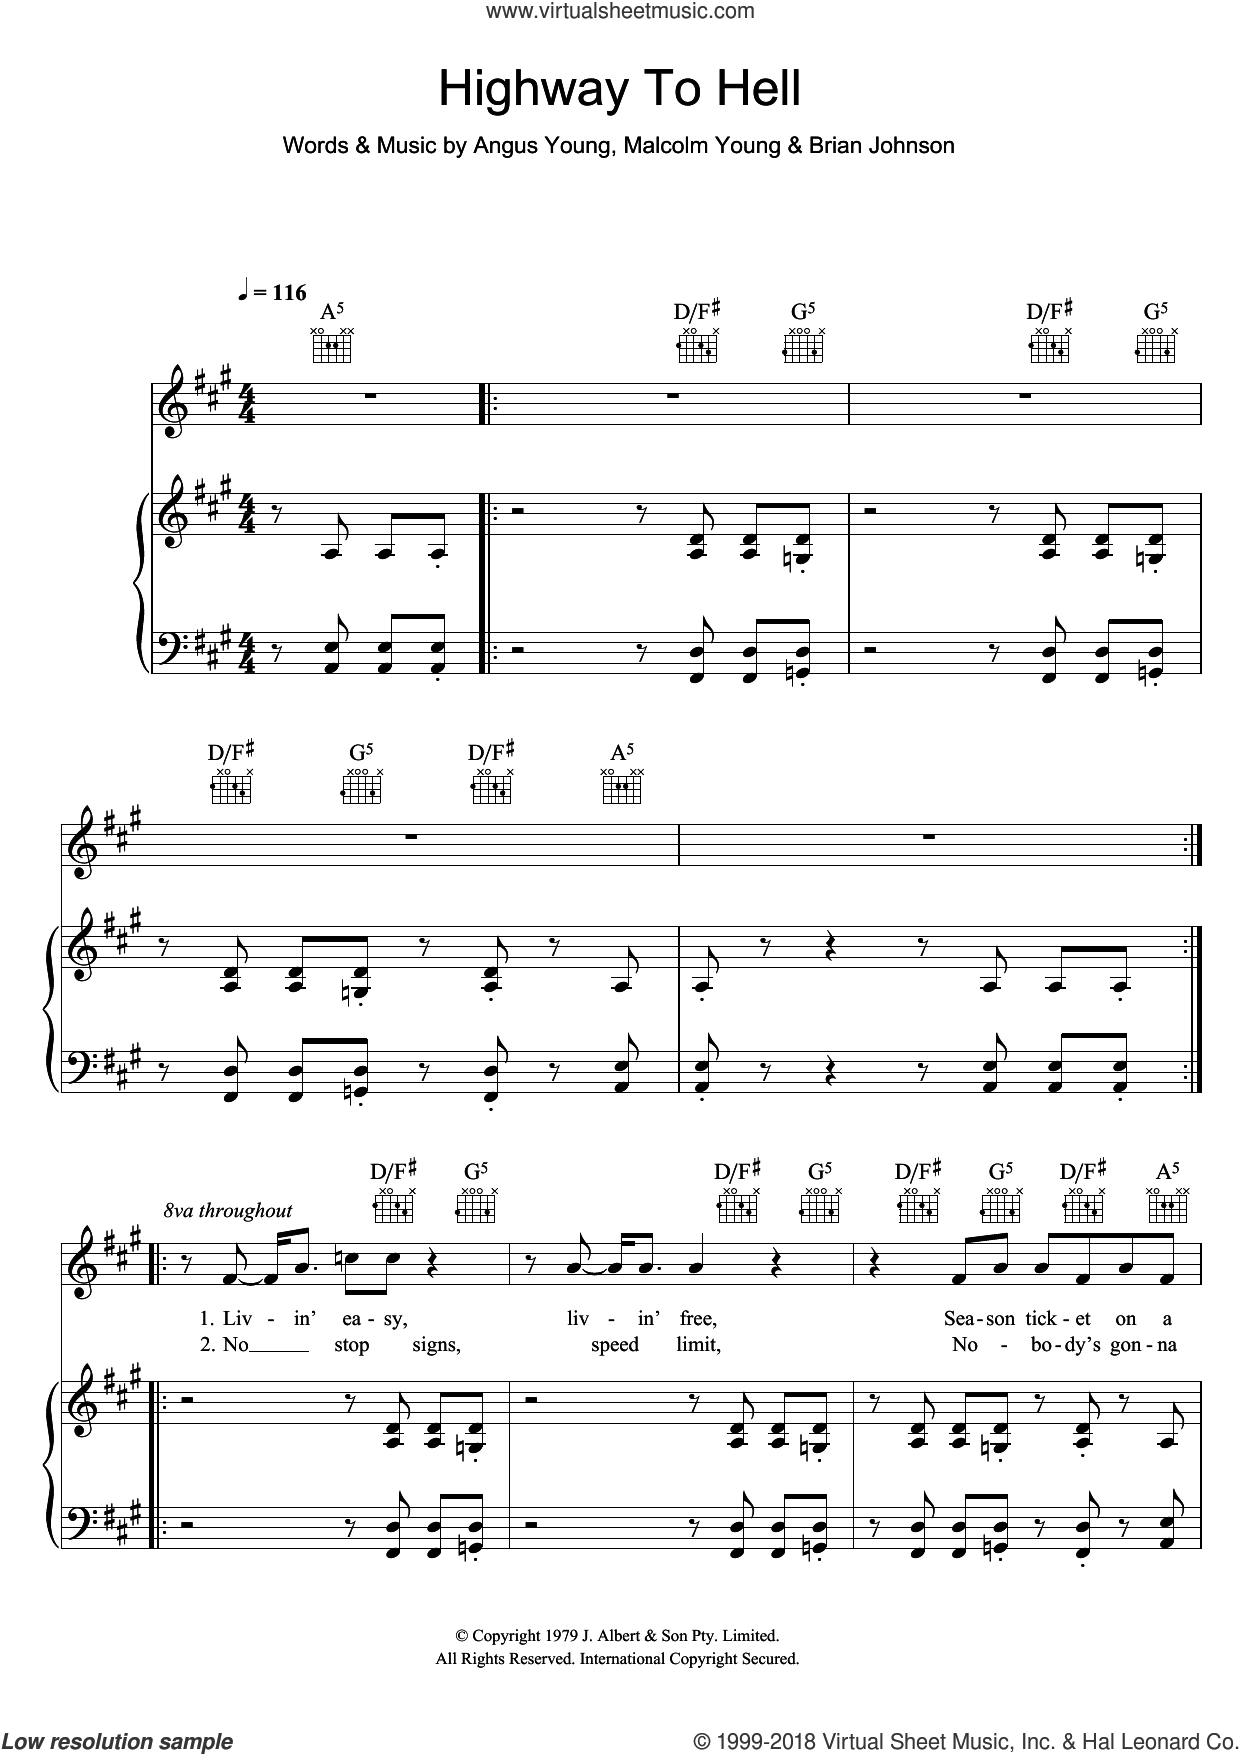 Highway To Hell sheet music for voice, piano or guitar by Malcolm Young